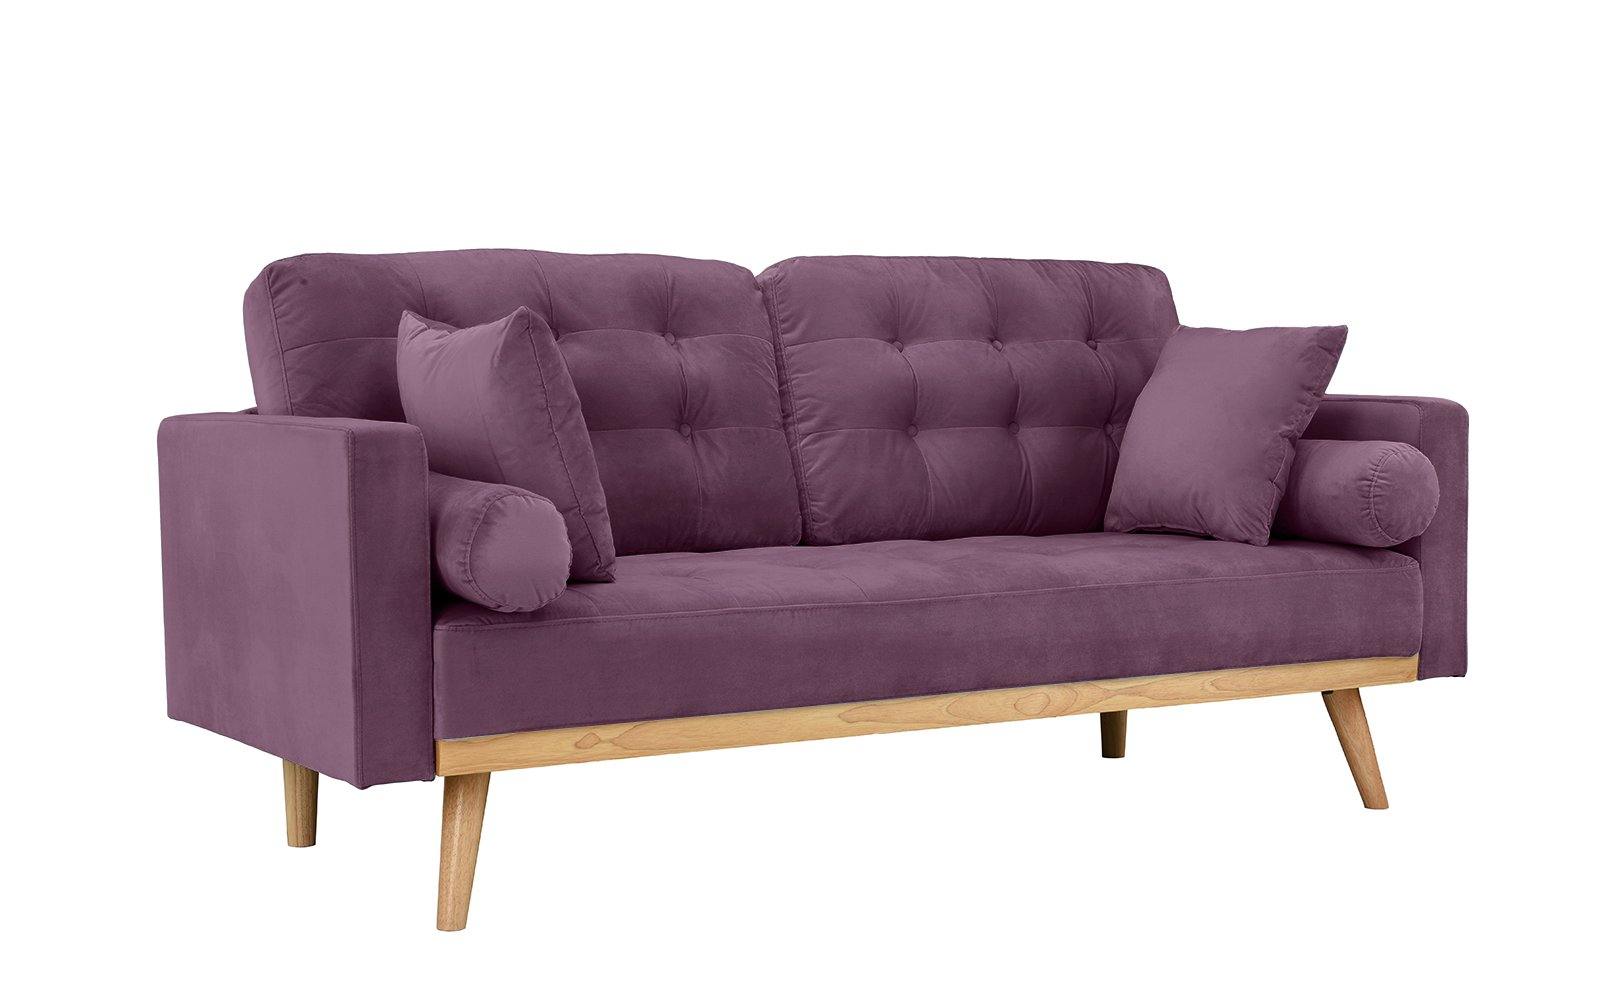 Mid-Century Modern Tufted Velvet Fabric Sofa (Purple) - Modern mid century sofa in various colors - Includes 2 bolster side pillows and 2 square pillows in the same fabric Soft hand picked velvet fabric in tufted button design for a touch of sophistication while still giving your living room a modern feel Super comfortable and stylish - this sofa is perfect for a small space and the colors available are sure to fit your home decor. - sofas-couches, living-room-furniture, living-room - 61UaaHGXmIL -